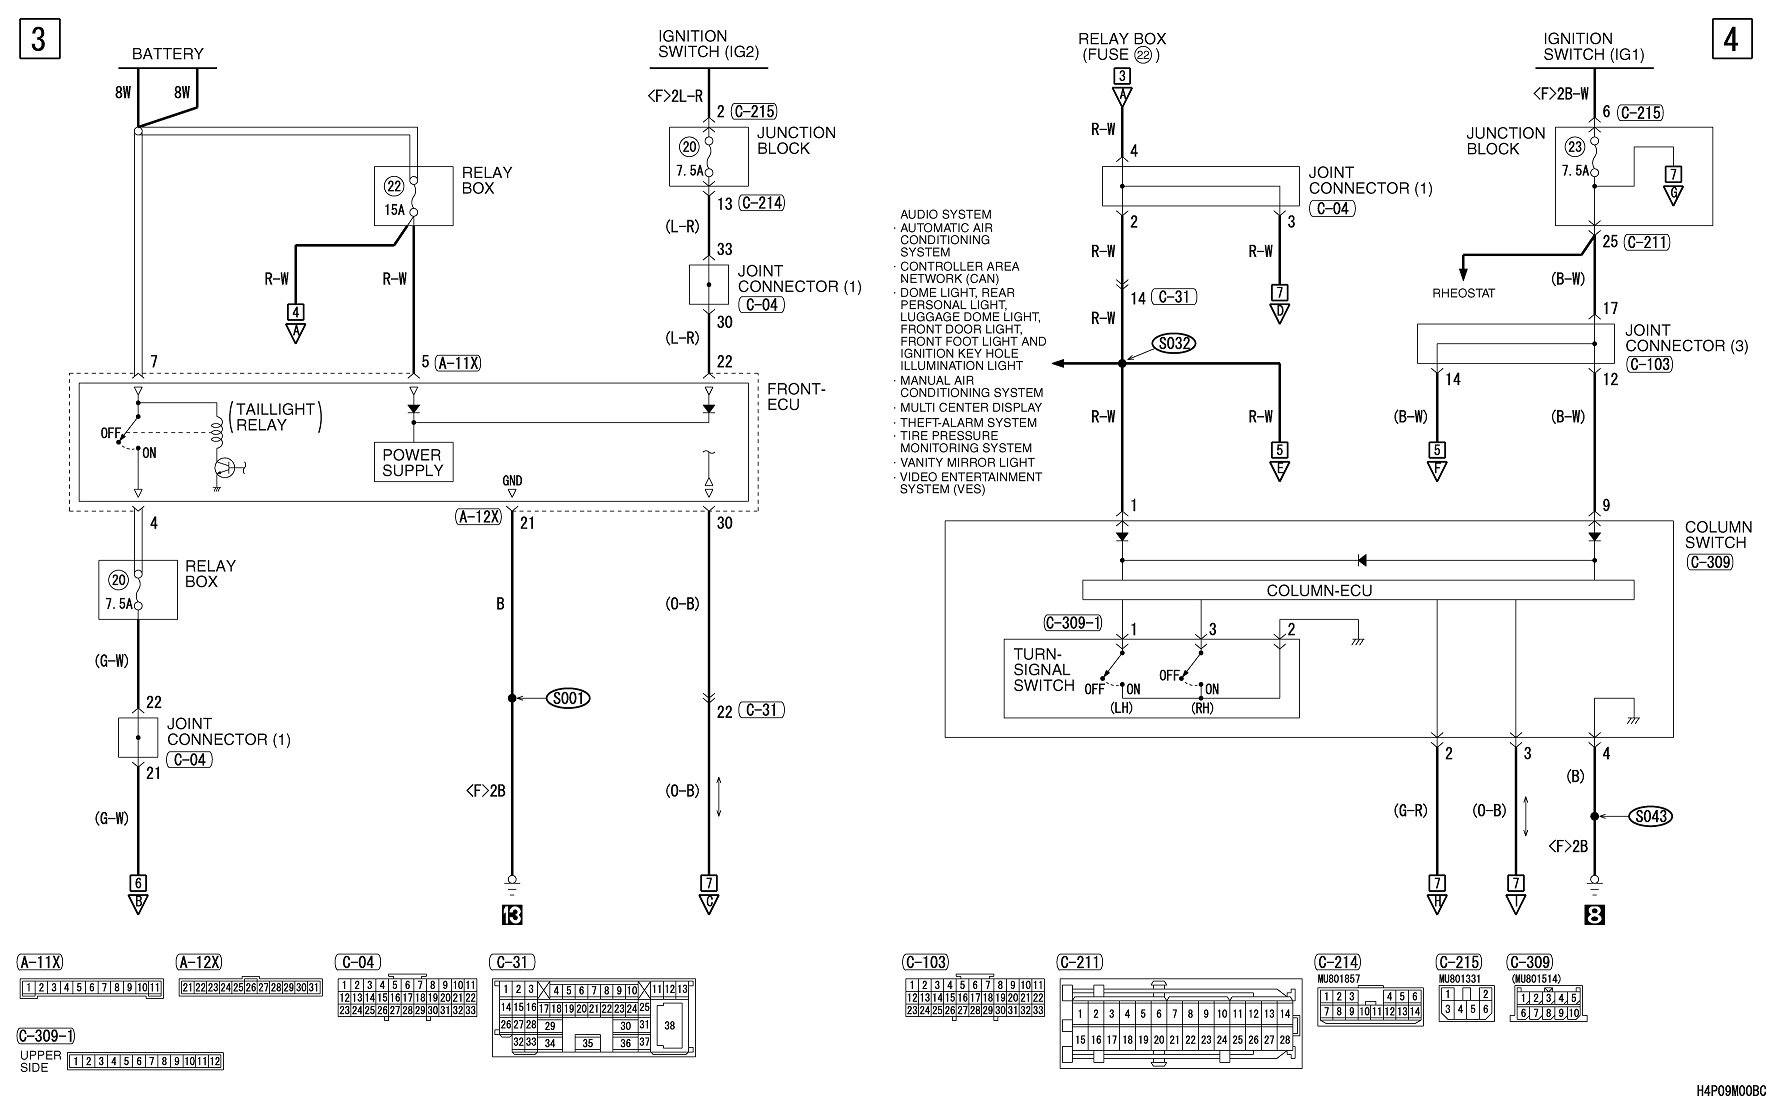 I Need Wiring Diagram For Mitsubishi Endeavor 2004